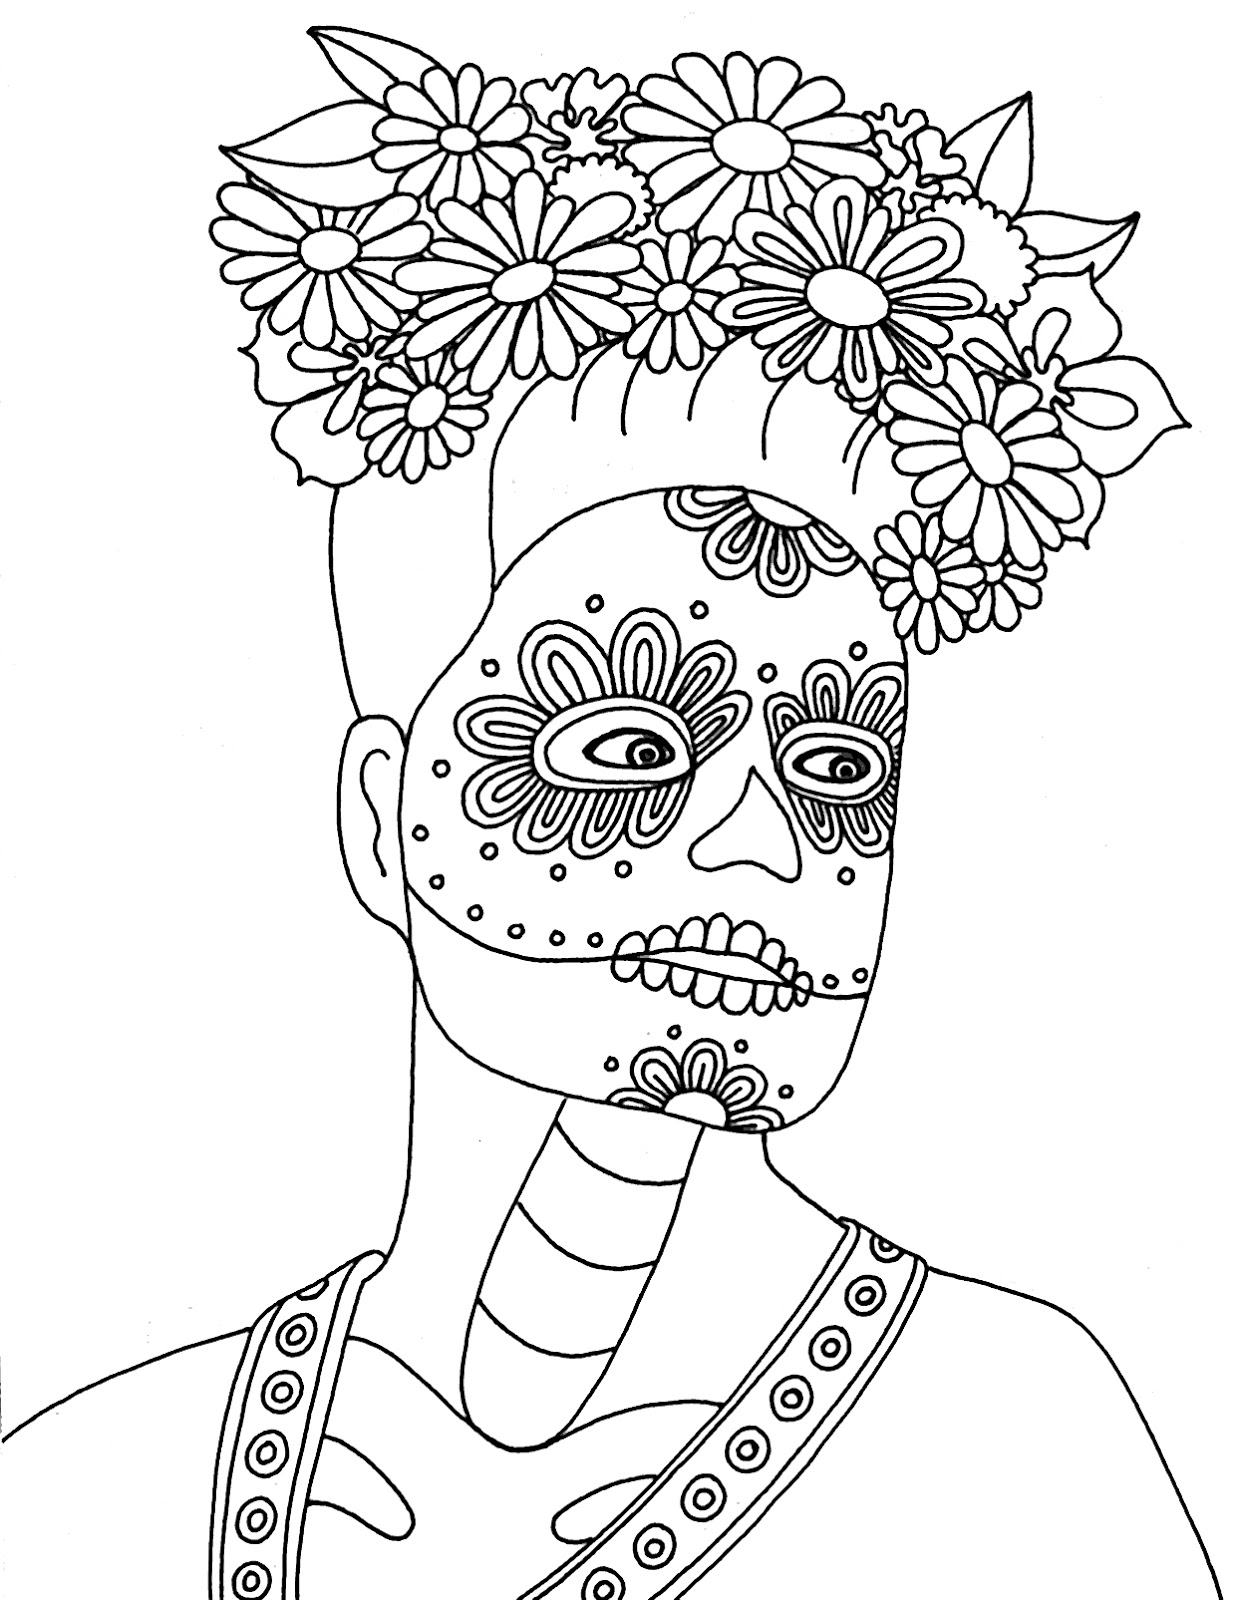 coloring pages people - photo#27